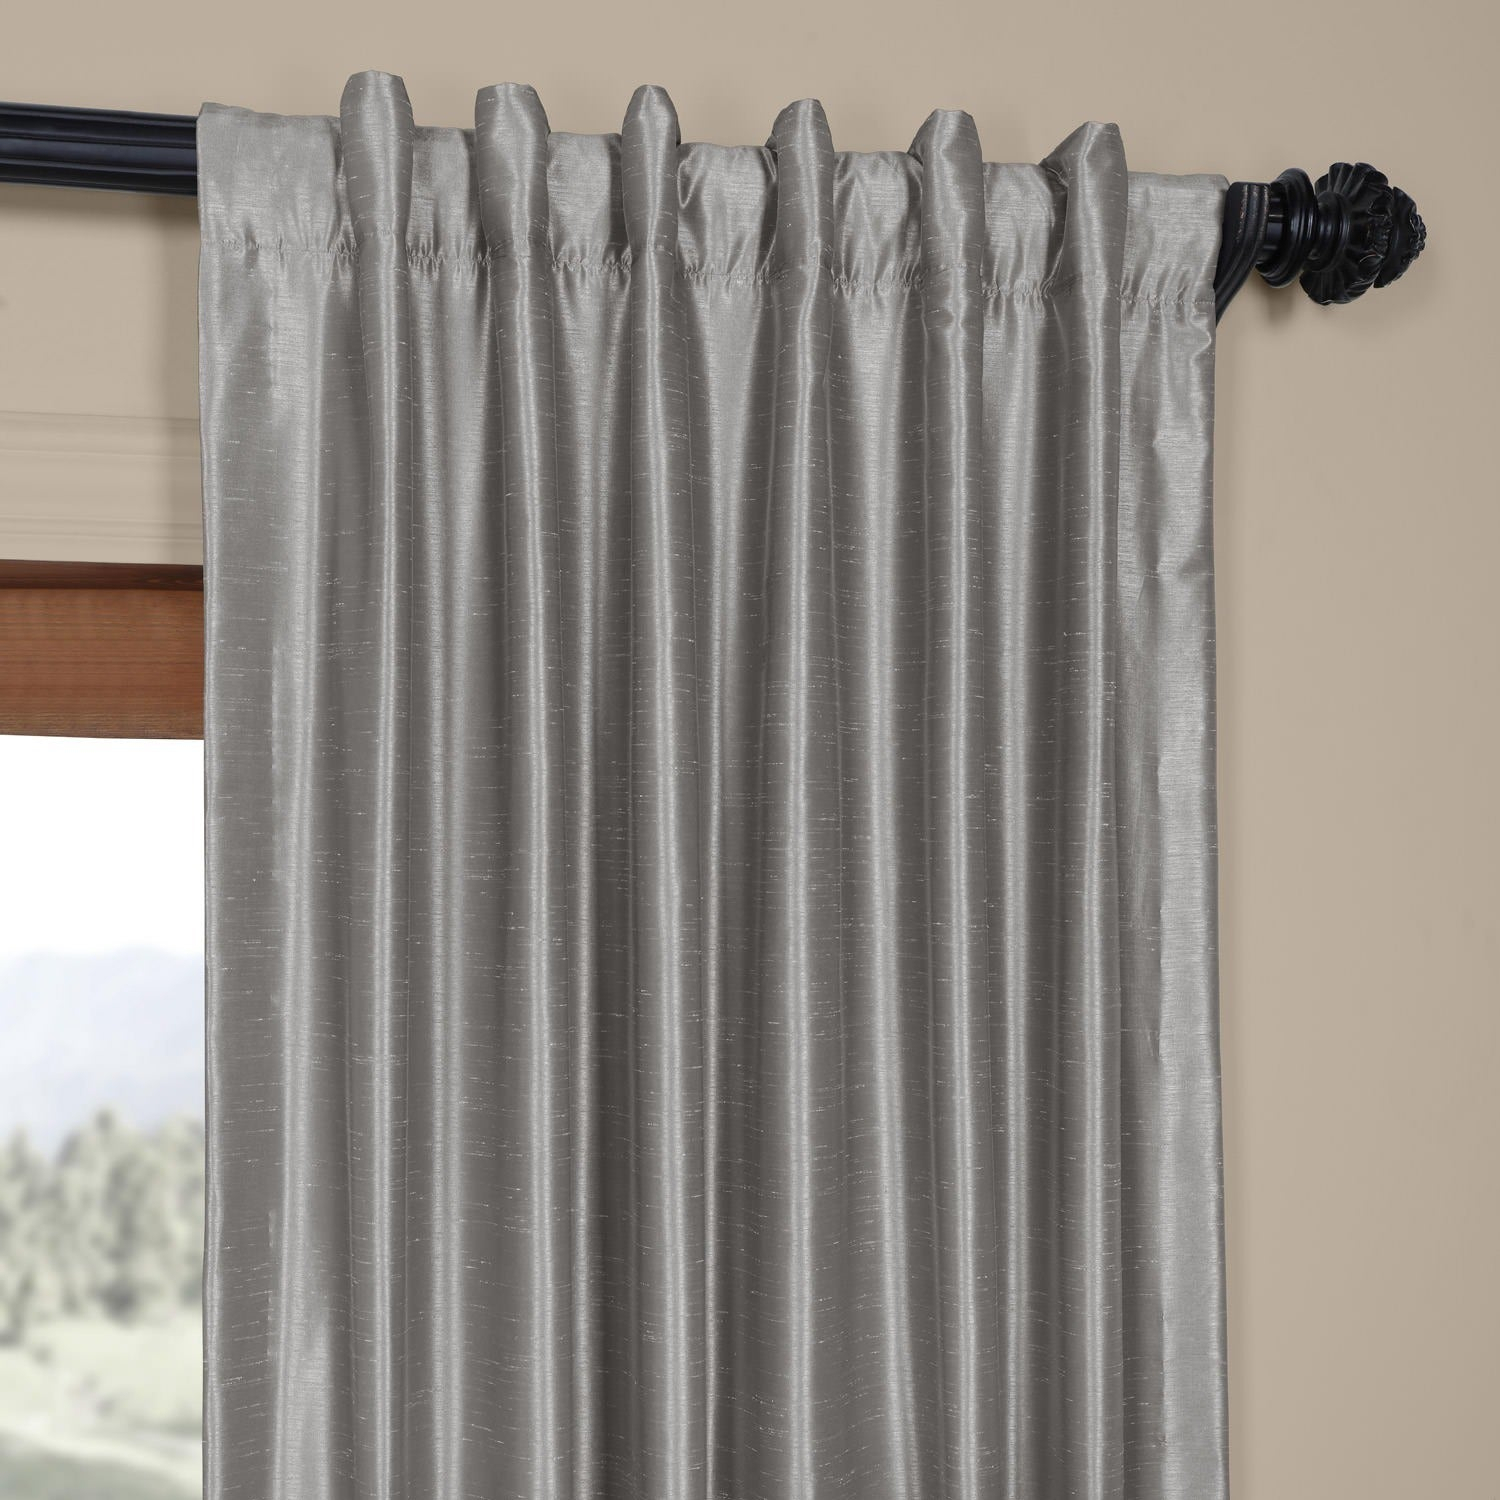 Exclusive Fabrics Silver Vintage Faux Textured Dupioni Silk Curtain Panel With Silver Vintage Faux Textured Silk Curtain Panels (View 19 of 30)